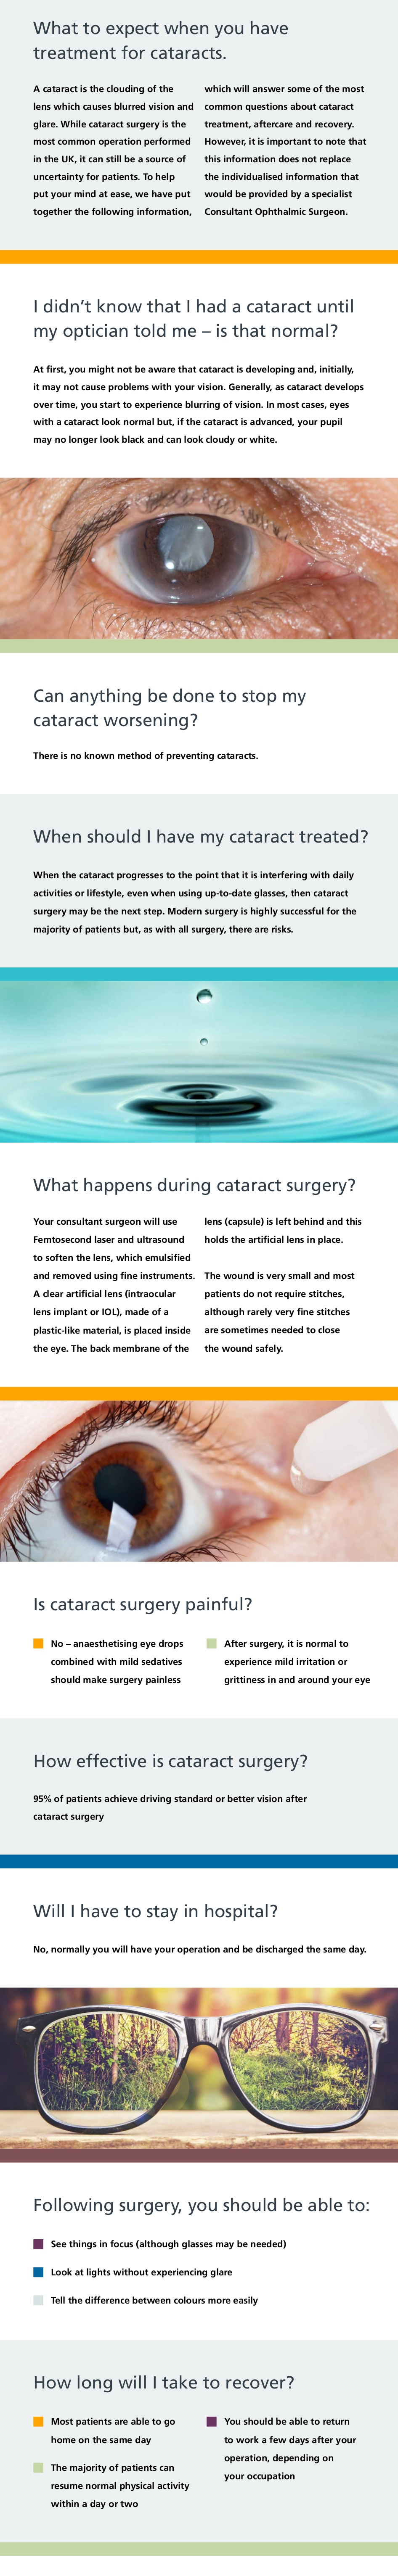 33509What to expect when you have treatment for Cataracts_v2.jpeg